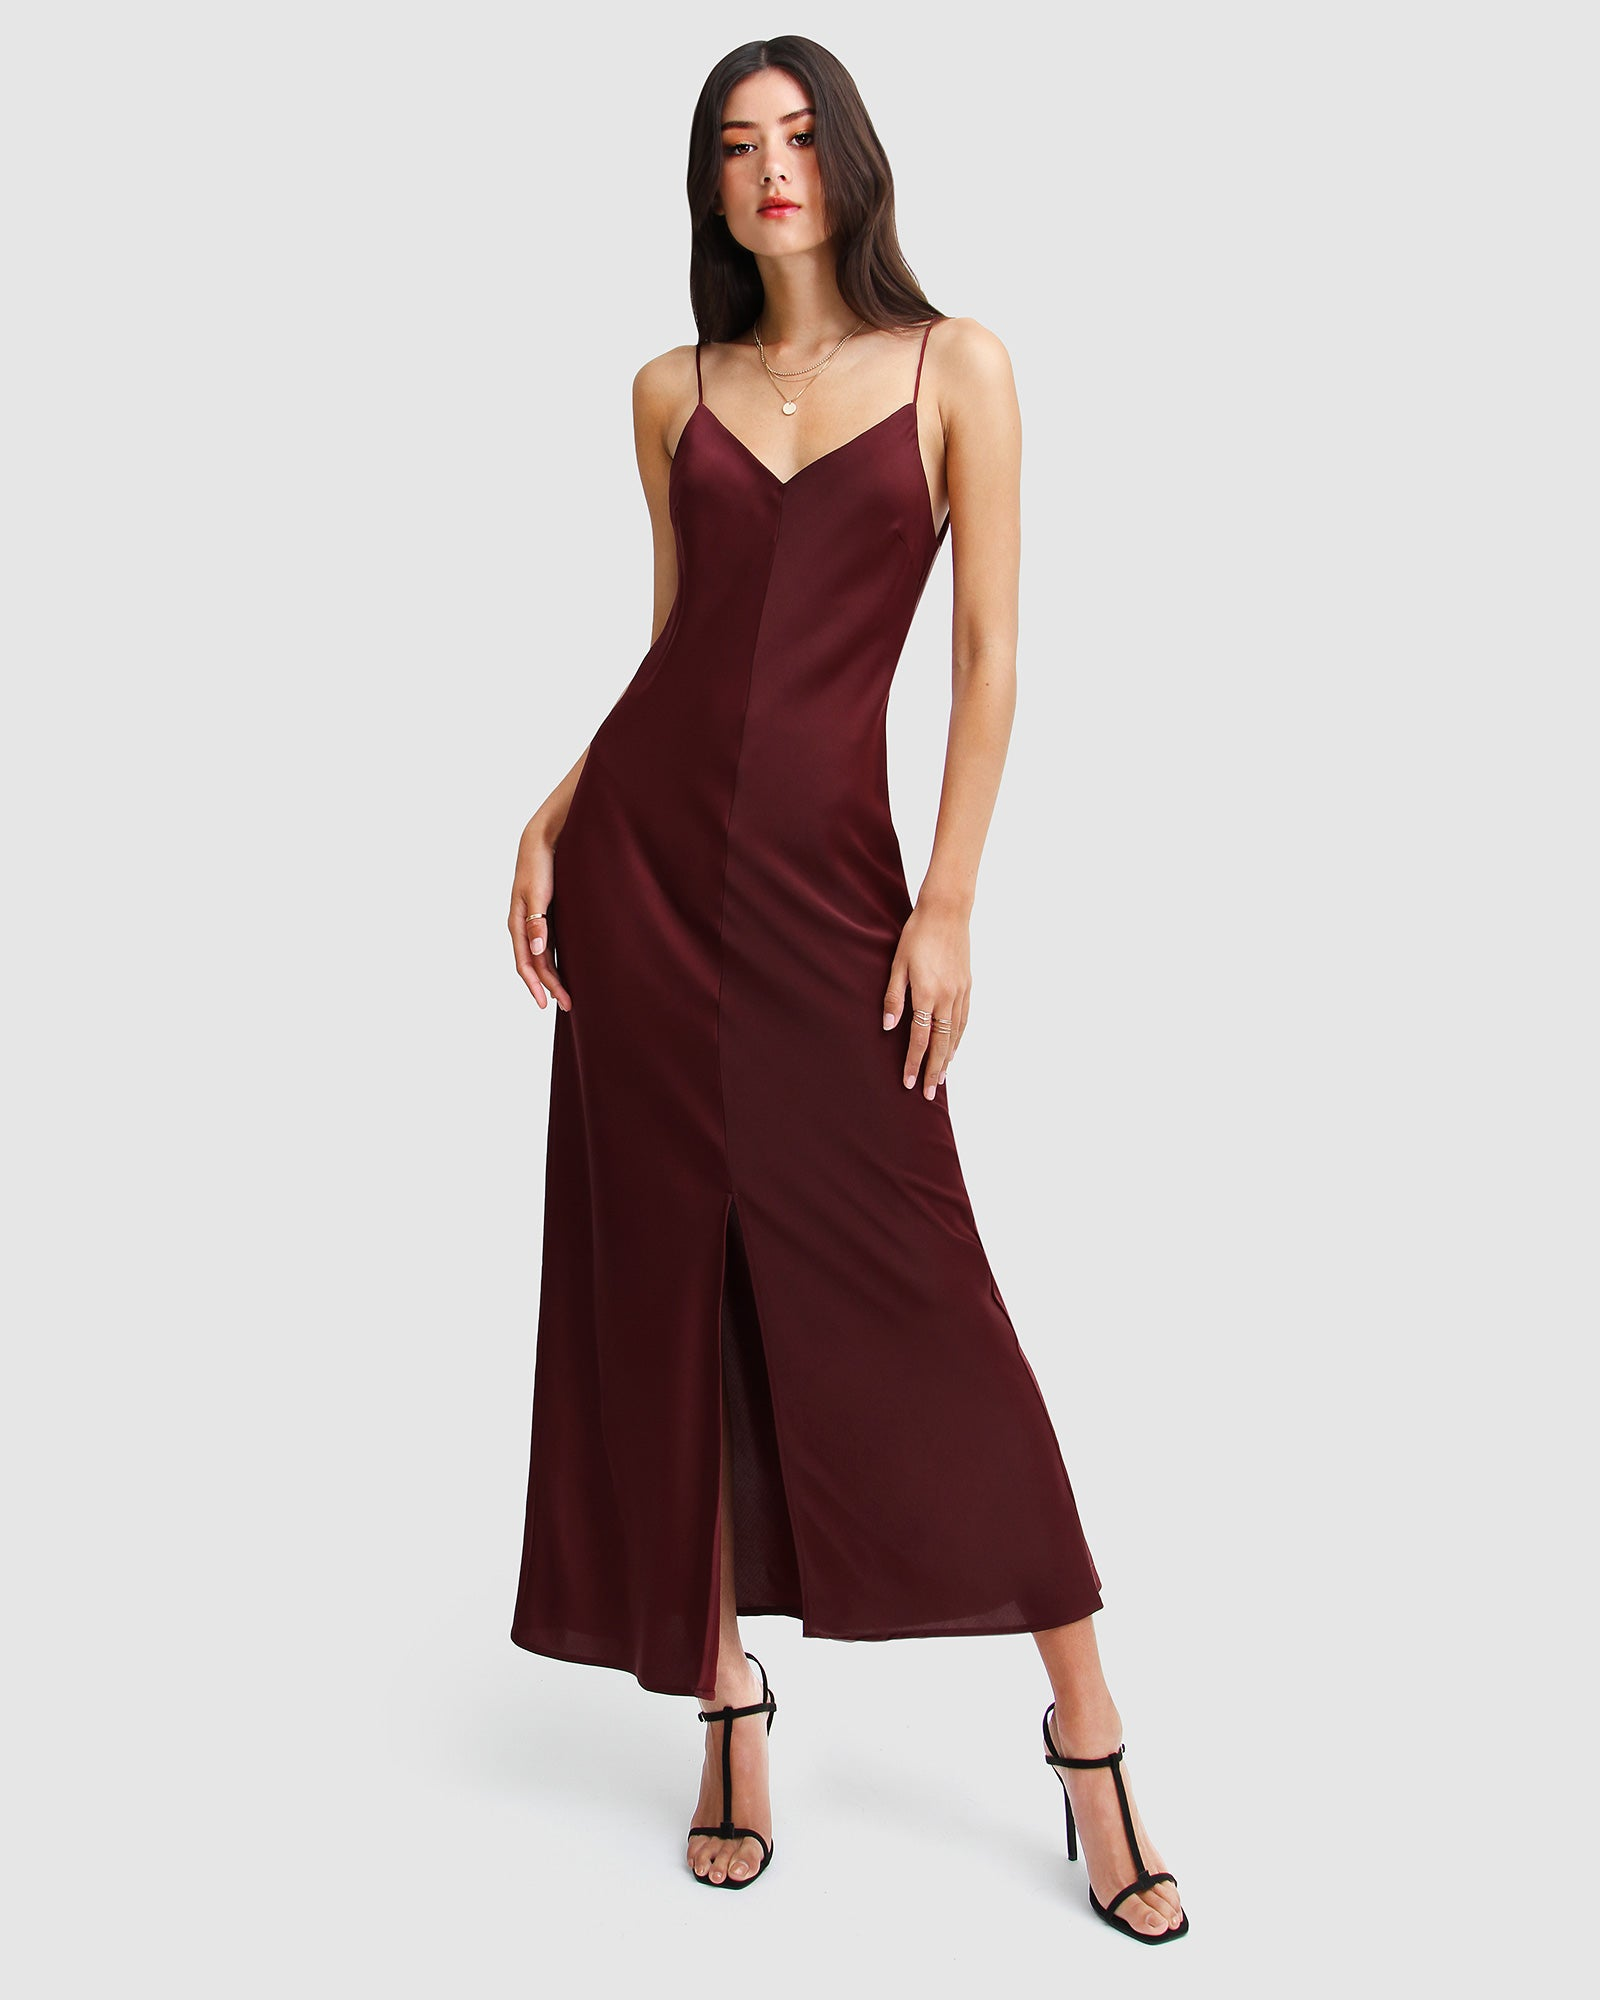 Slip Up Maxi Dress - Burgundy